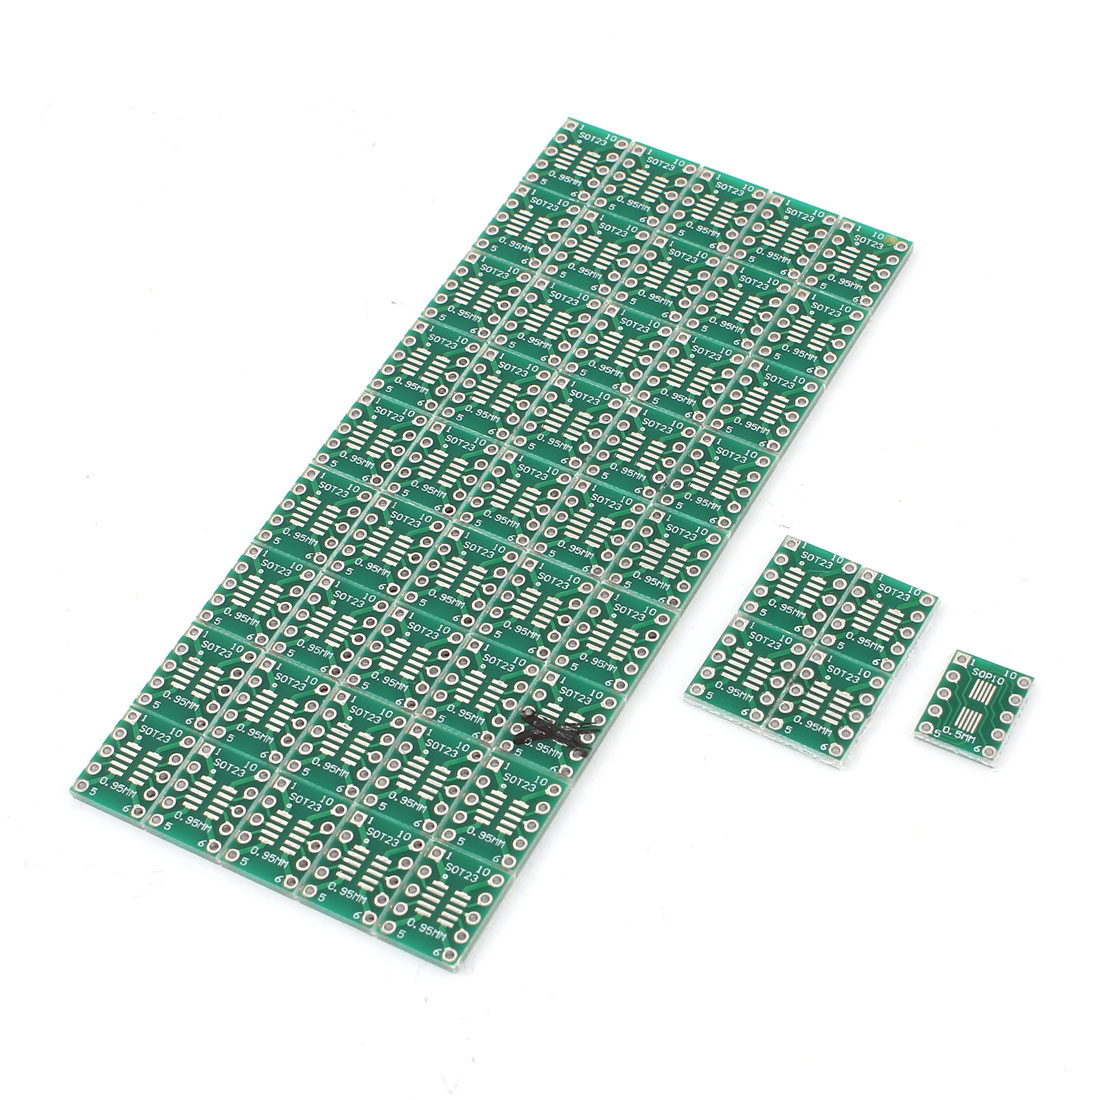 50Pcs 0.95mm 0.5mm SOT23/SOP10 to 2.54mm DIP23 DIP10 SMD IC PCB Adapter Socket